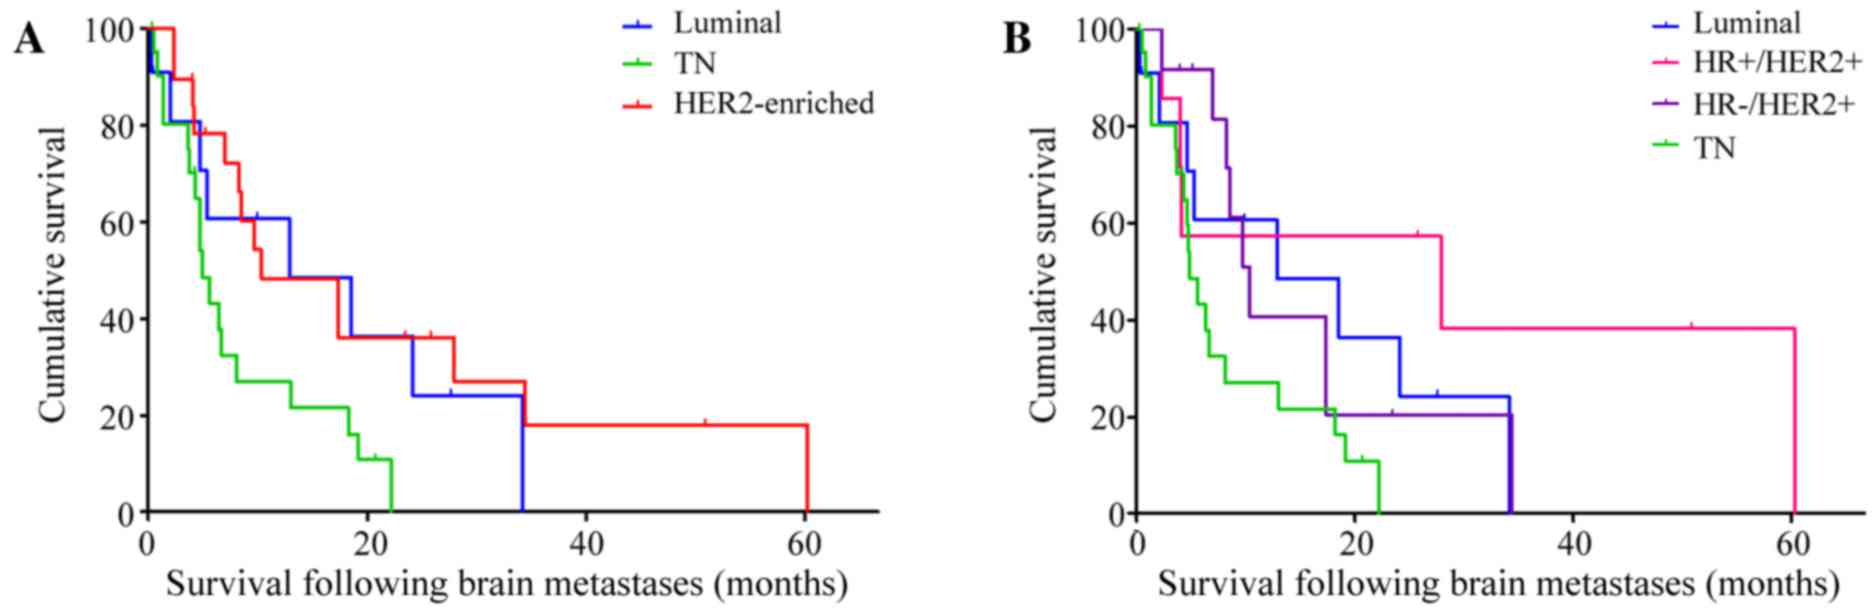 metastatic cancer and survival